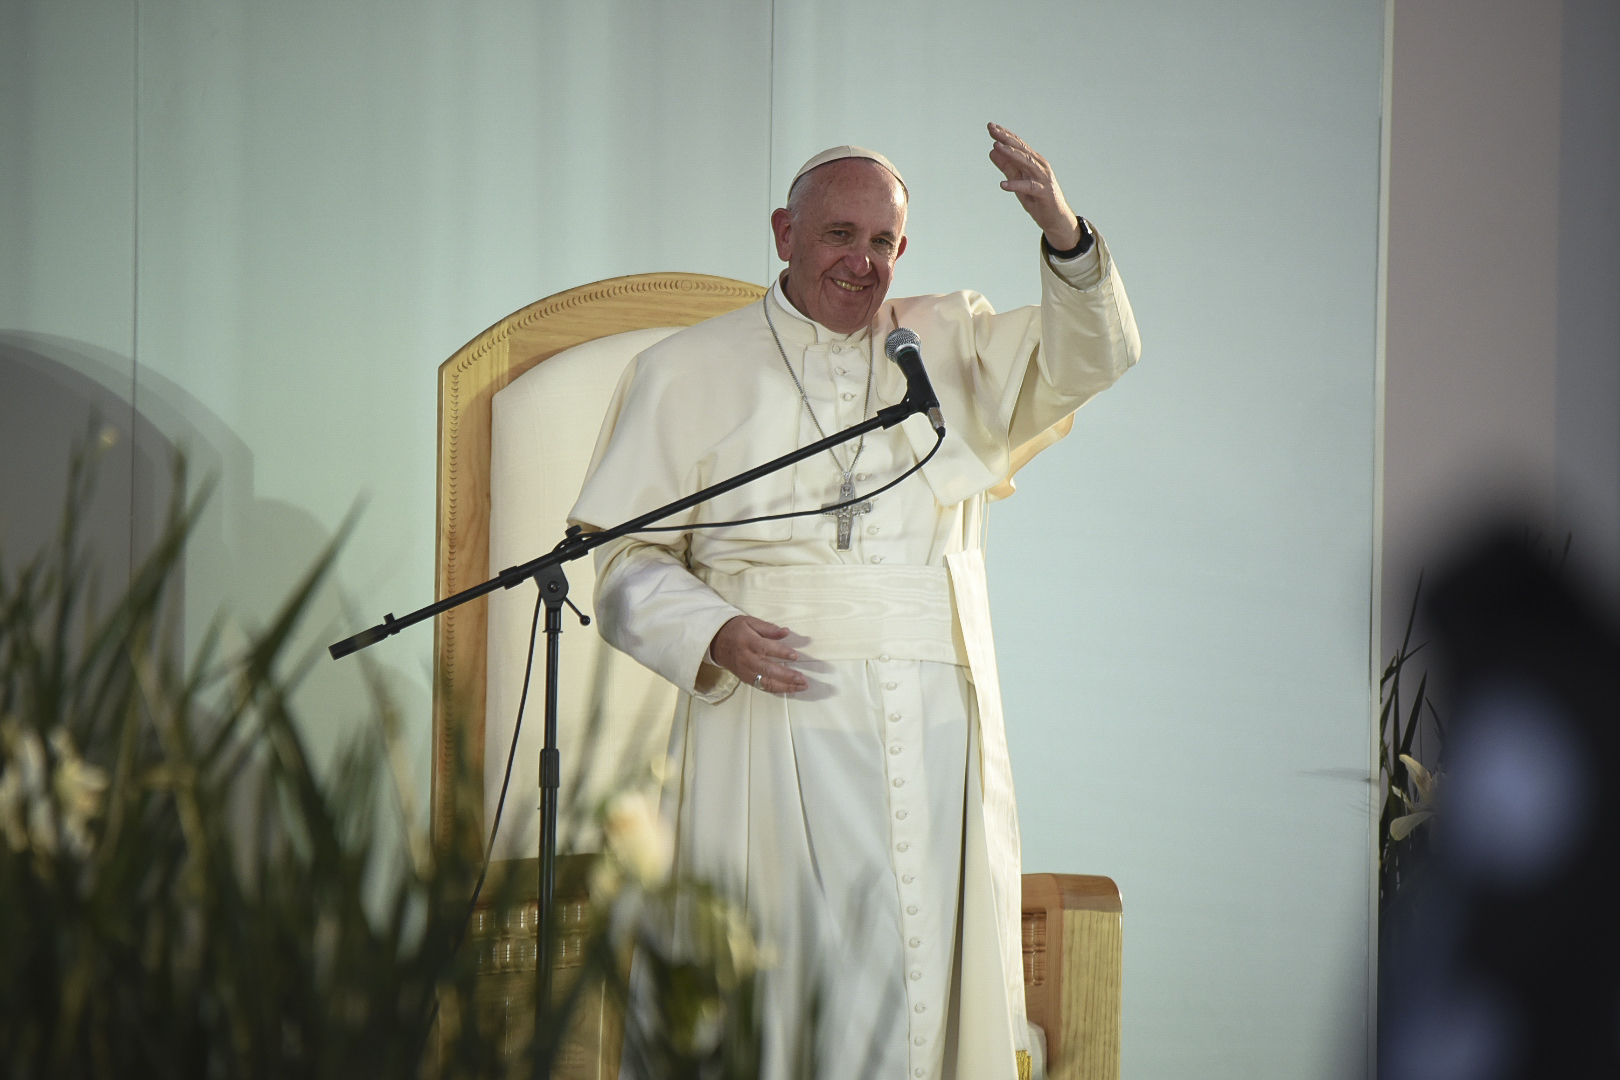 Love the Pope!